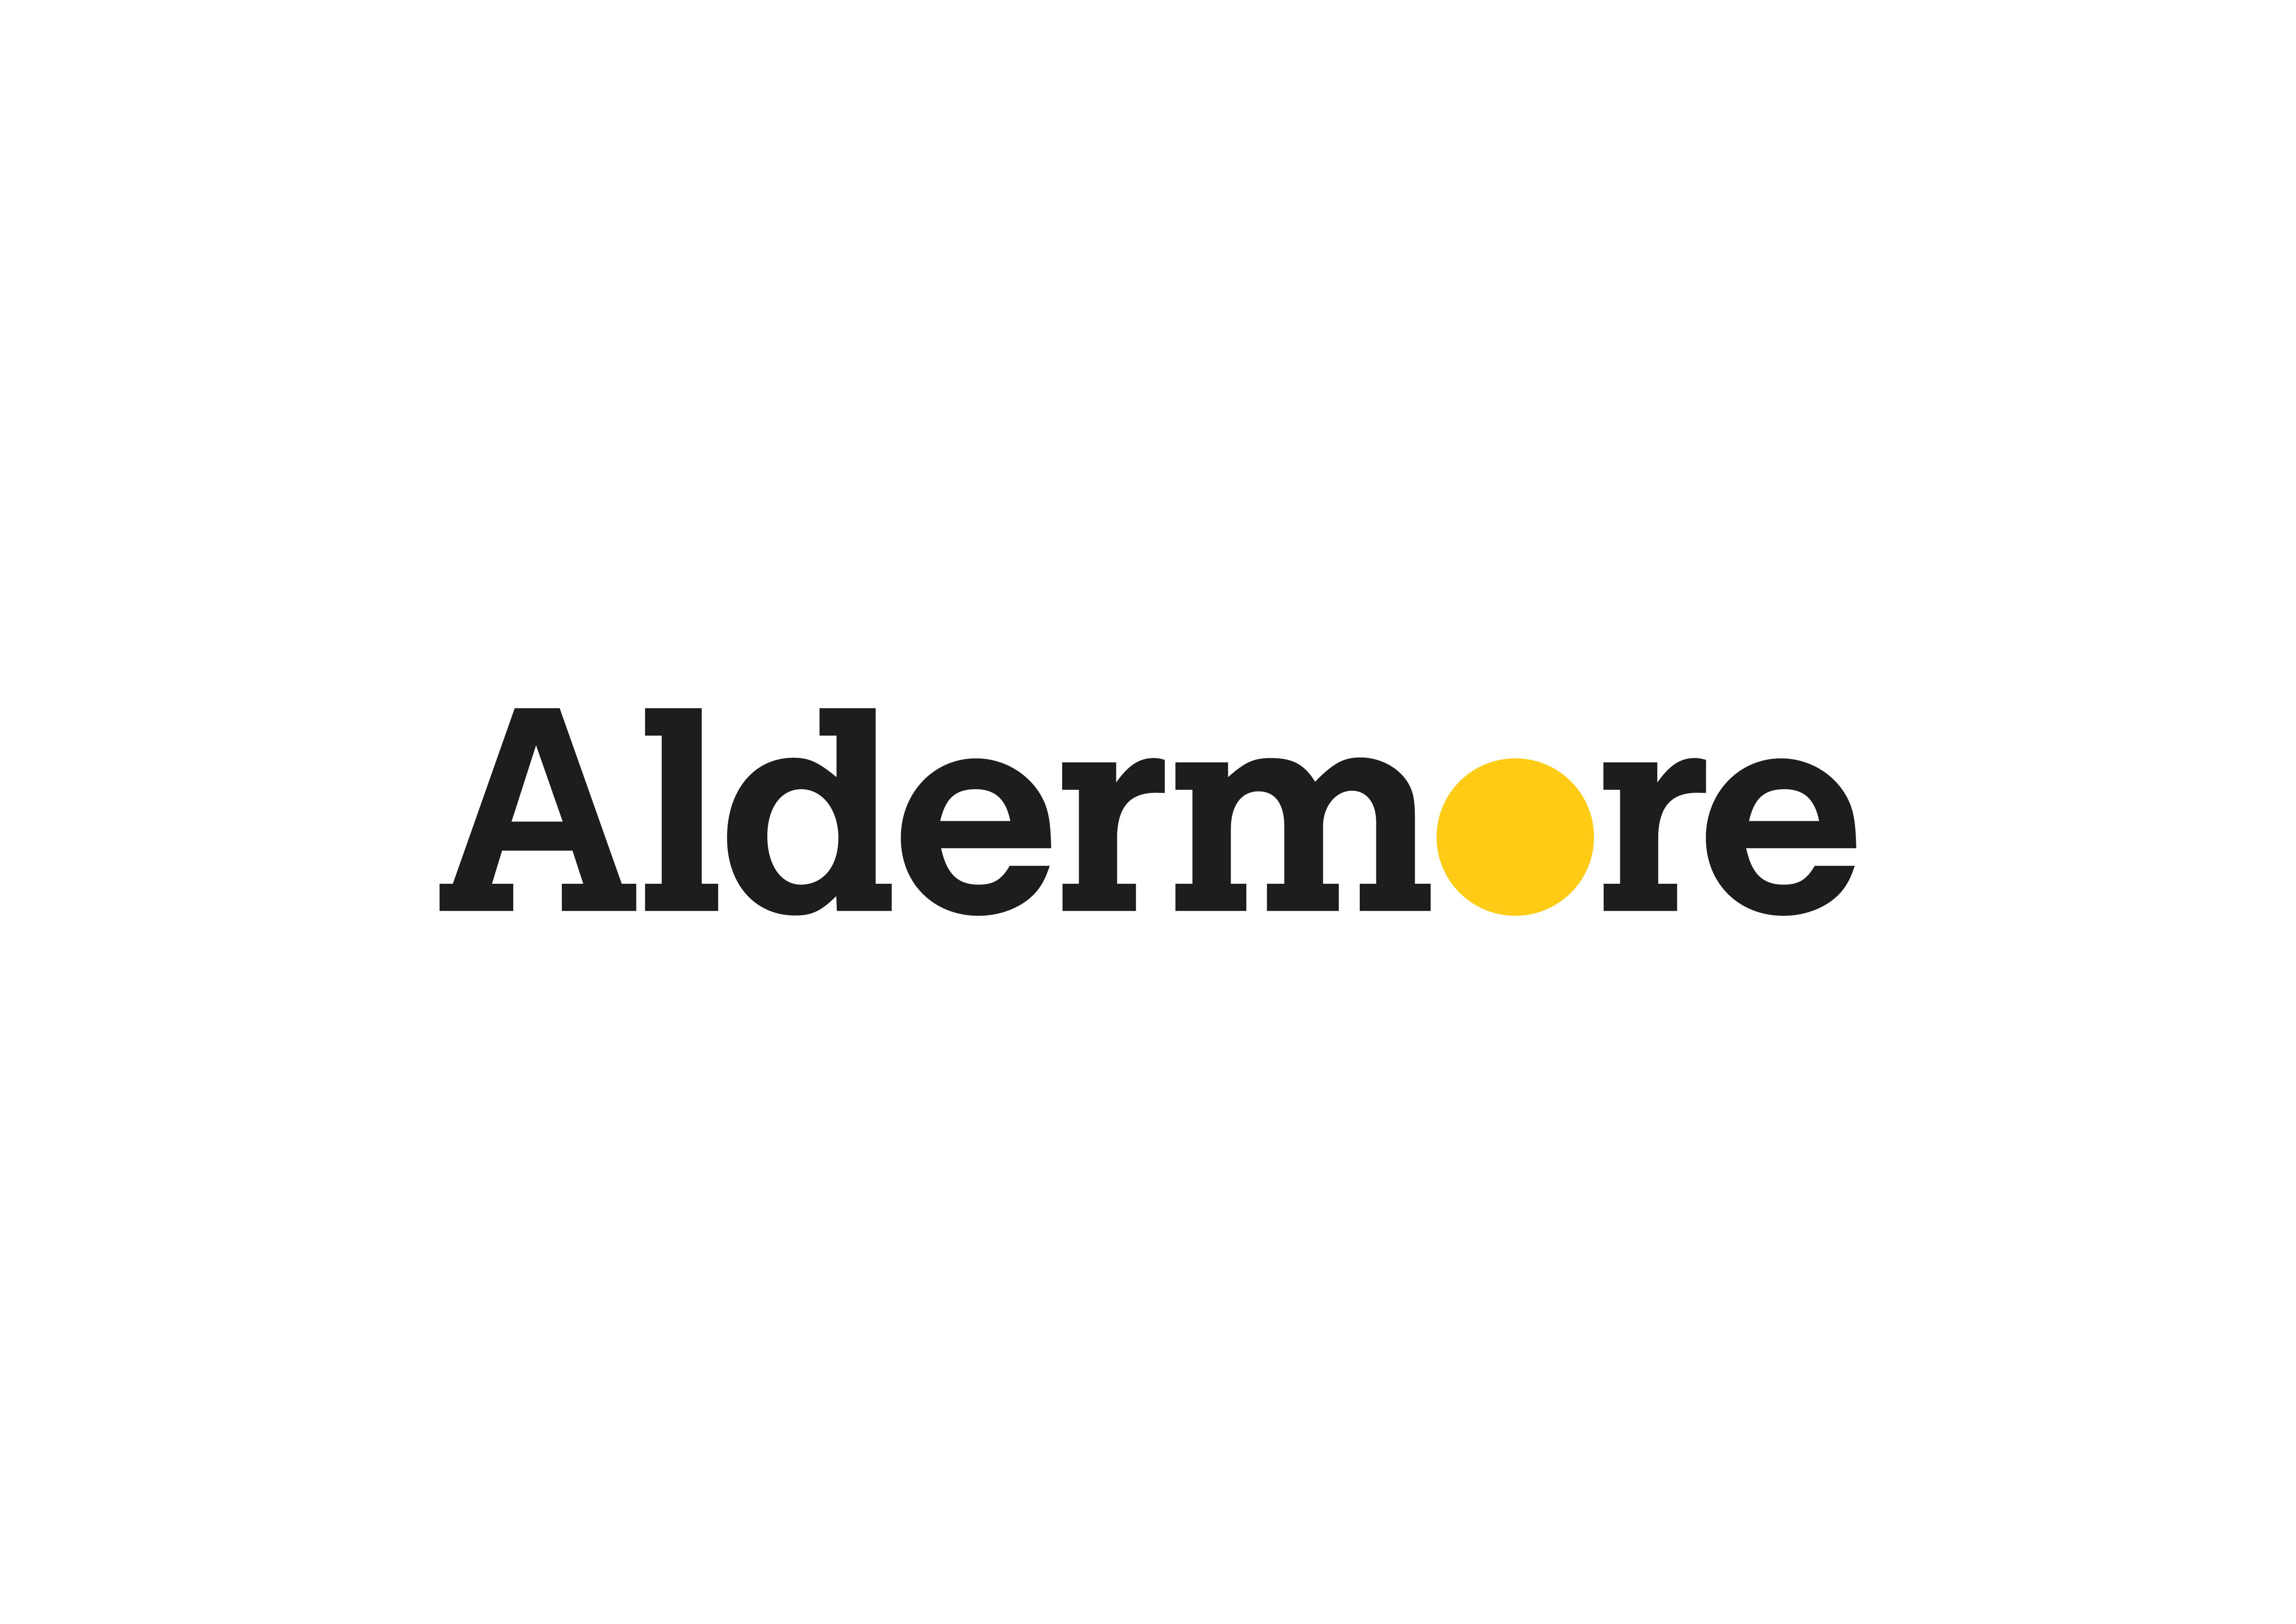 Aldermore yearly results show business finance up 12%